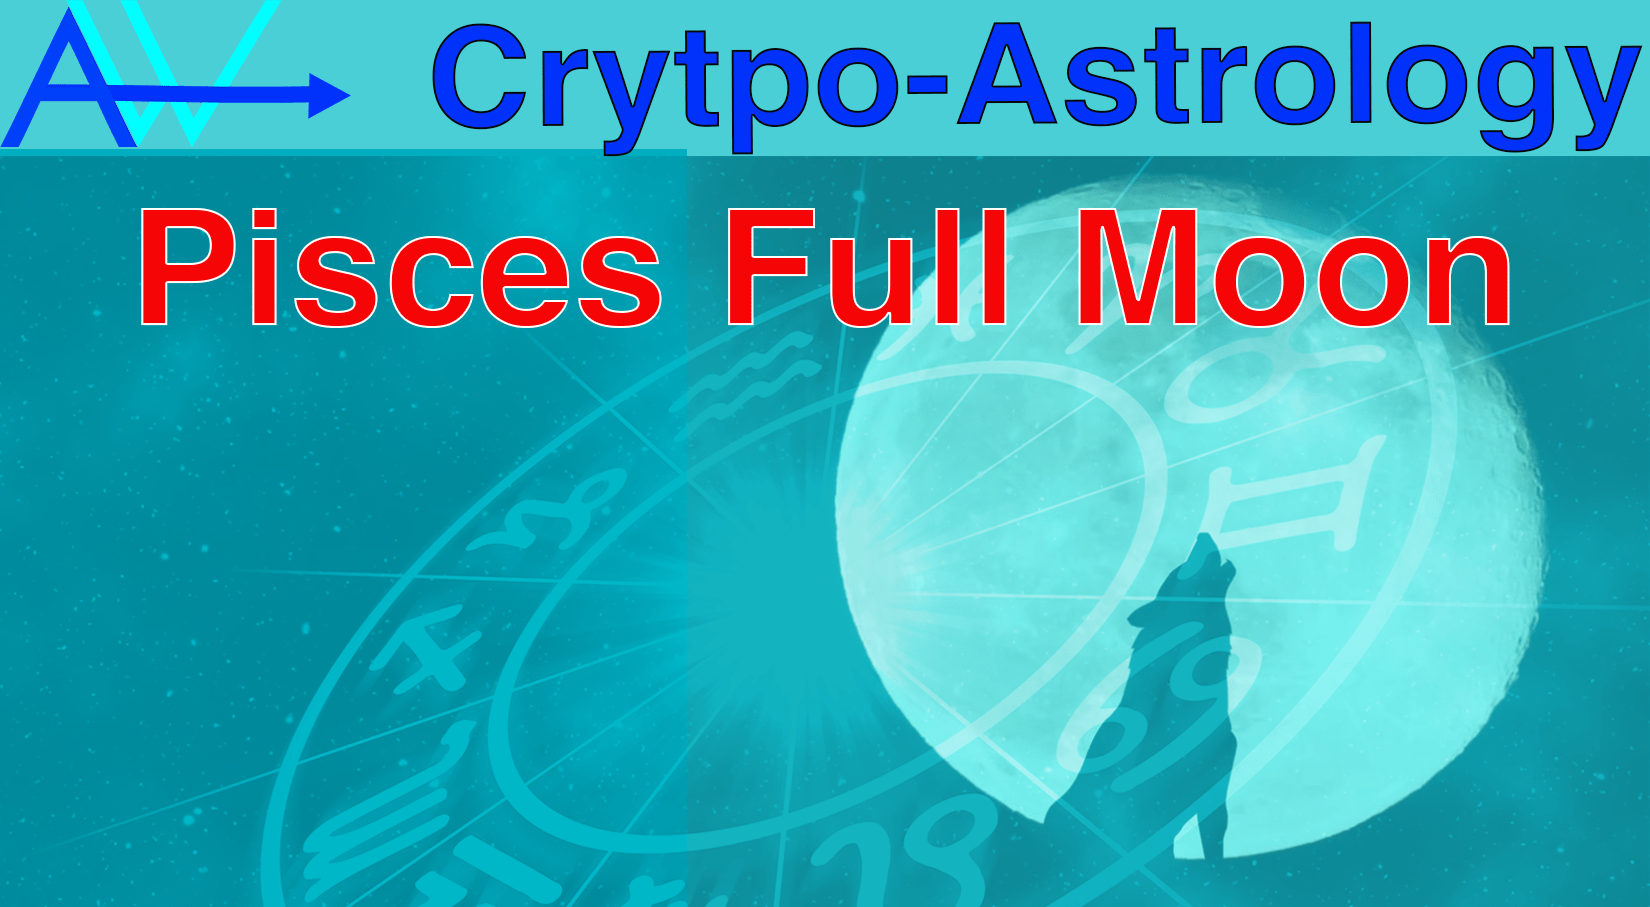 Pisces Full Moon – CryptoAstrology – Bitcoin Prediction<br><span style='color:#00adee;font-size:.8em'>CryptoAstrology Pisces Full Moon</span>